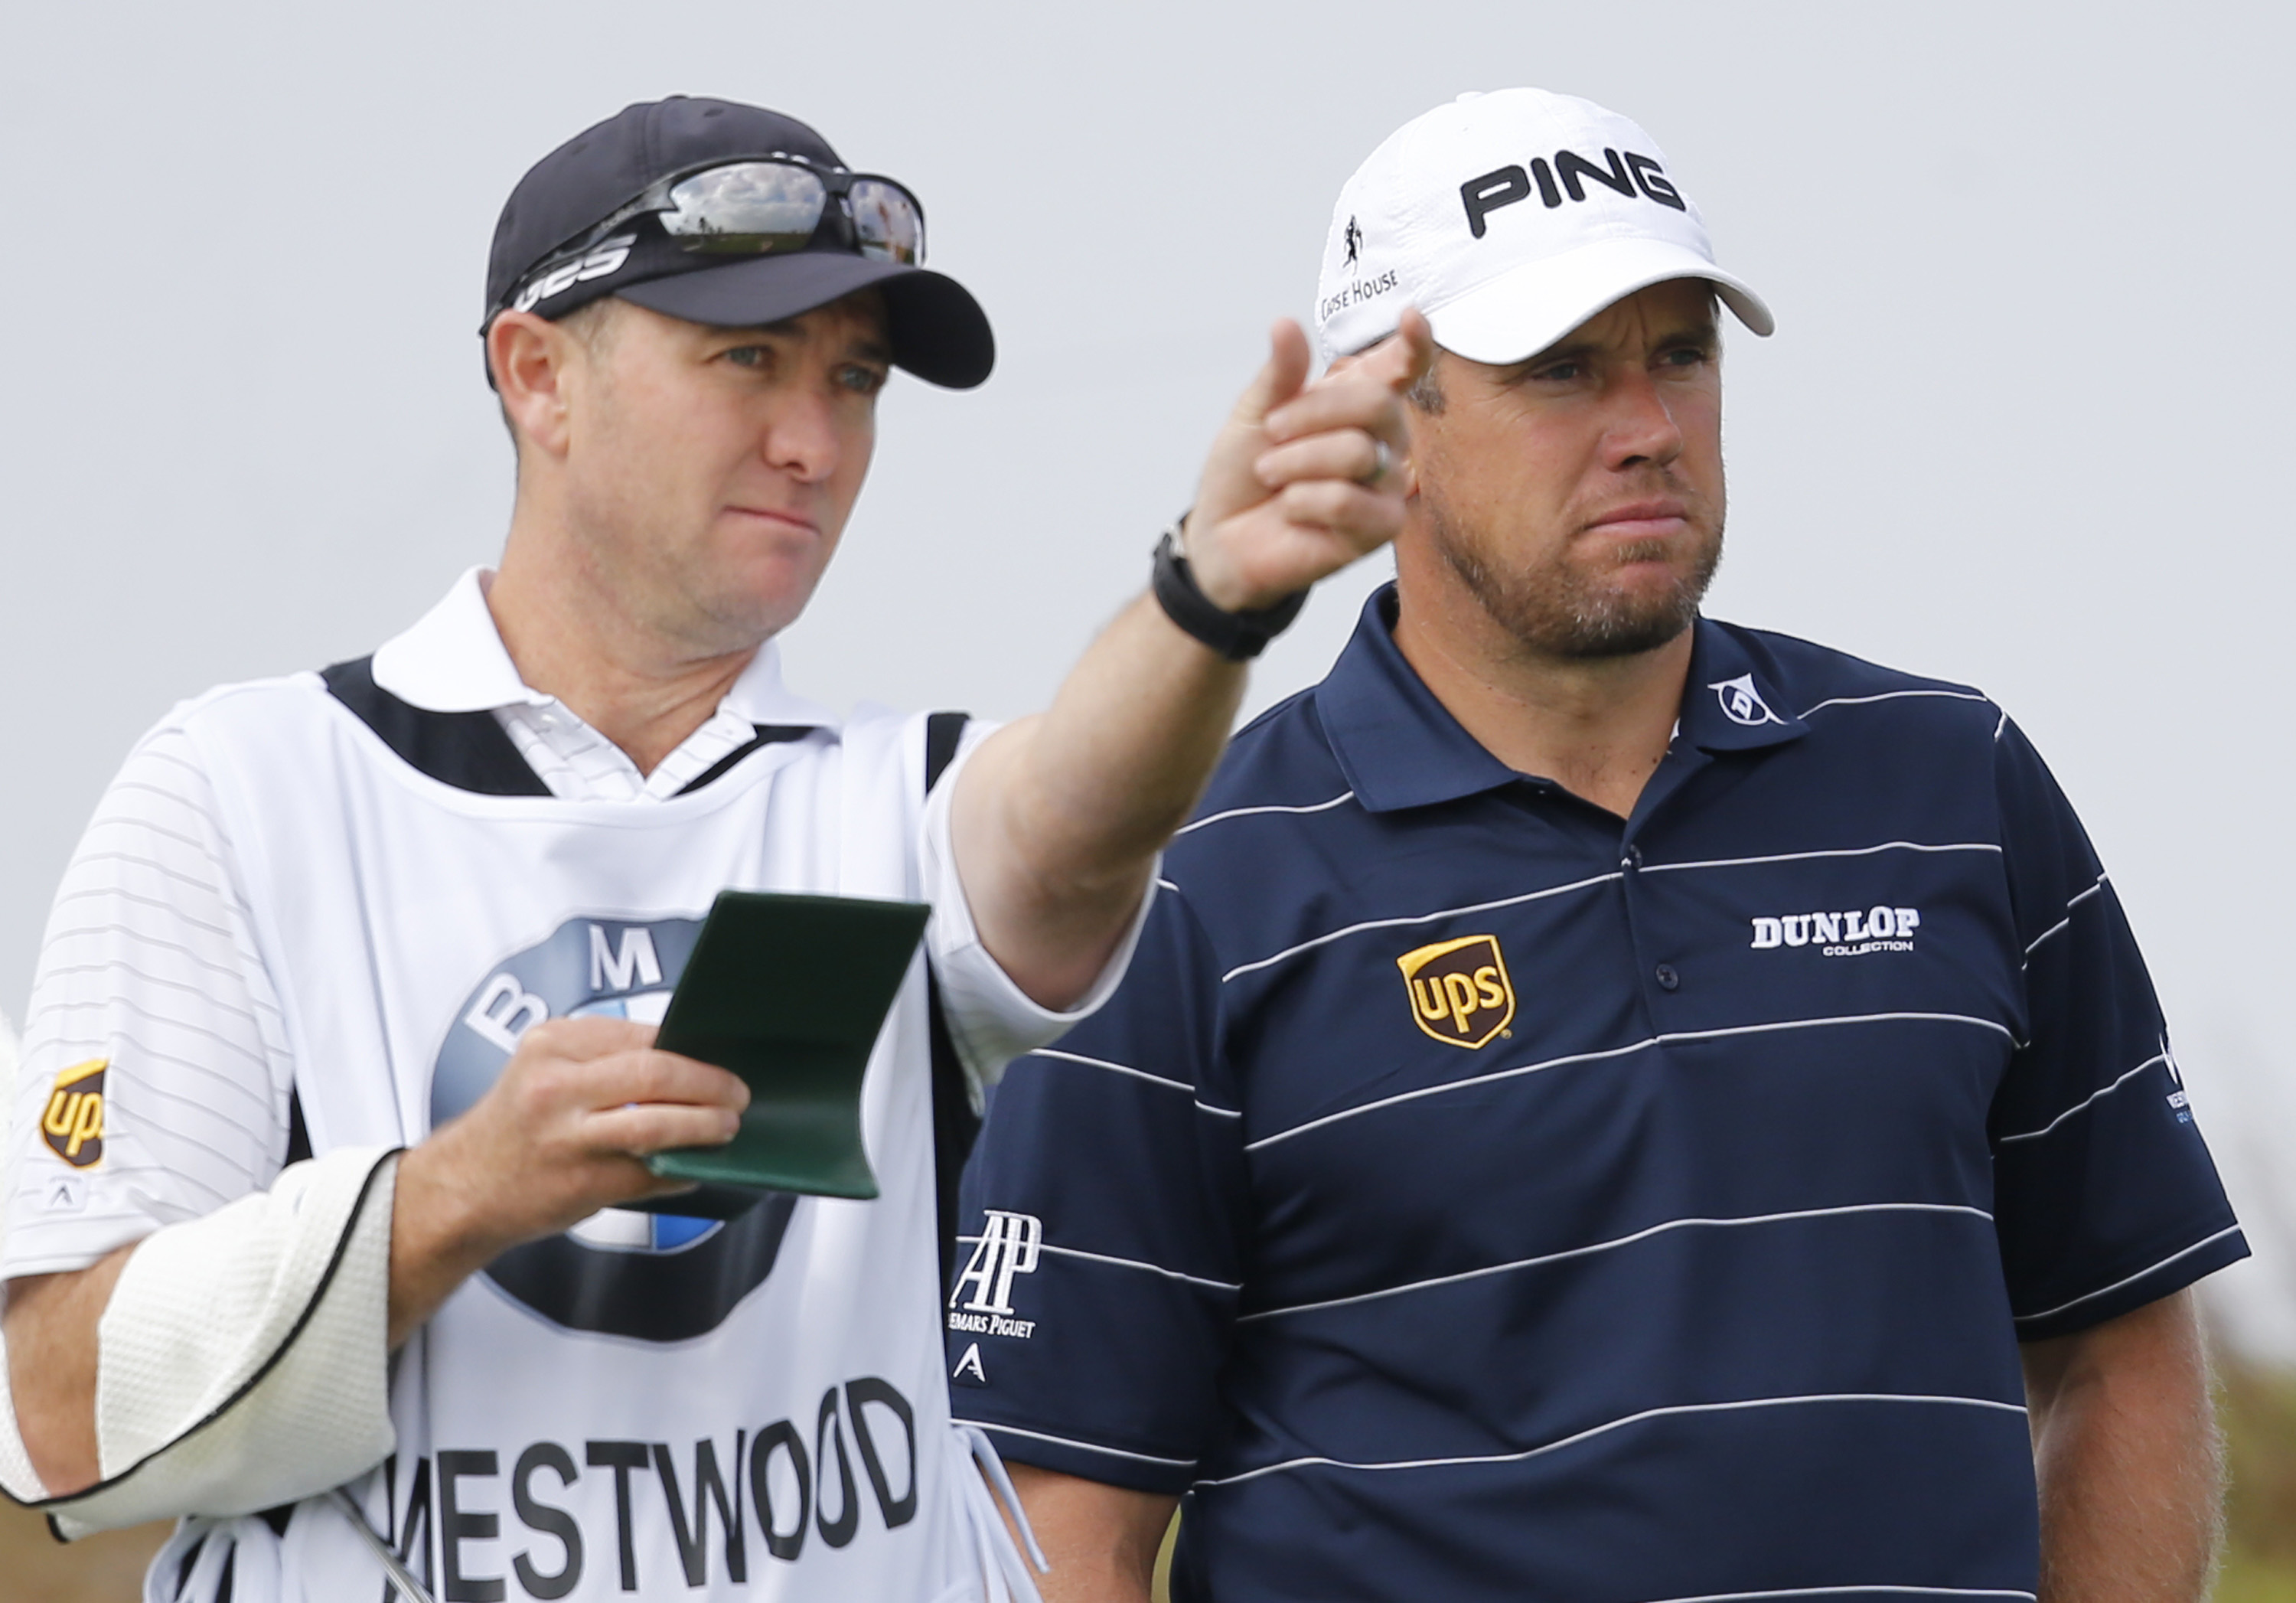 Lee Westwood of England, right, listens his caddie at the 2nd hole during a pro-am competition ahead of the Masters golf tournament at the Lake Malaren Golf Club in Shanghai, China, Wednesday, Oct. 23, 2013. The Shanghai Masters will begin on Oct. 24